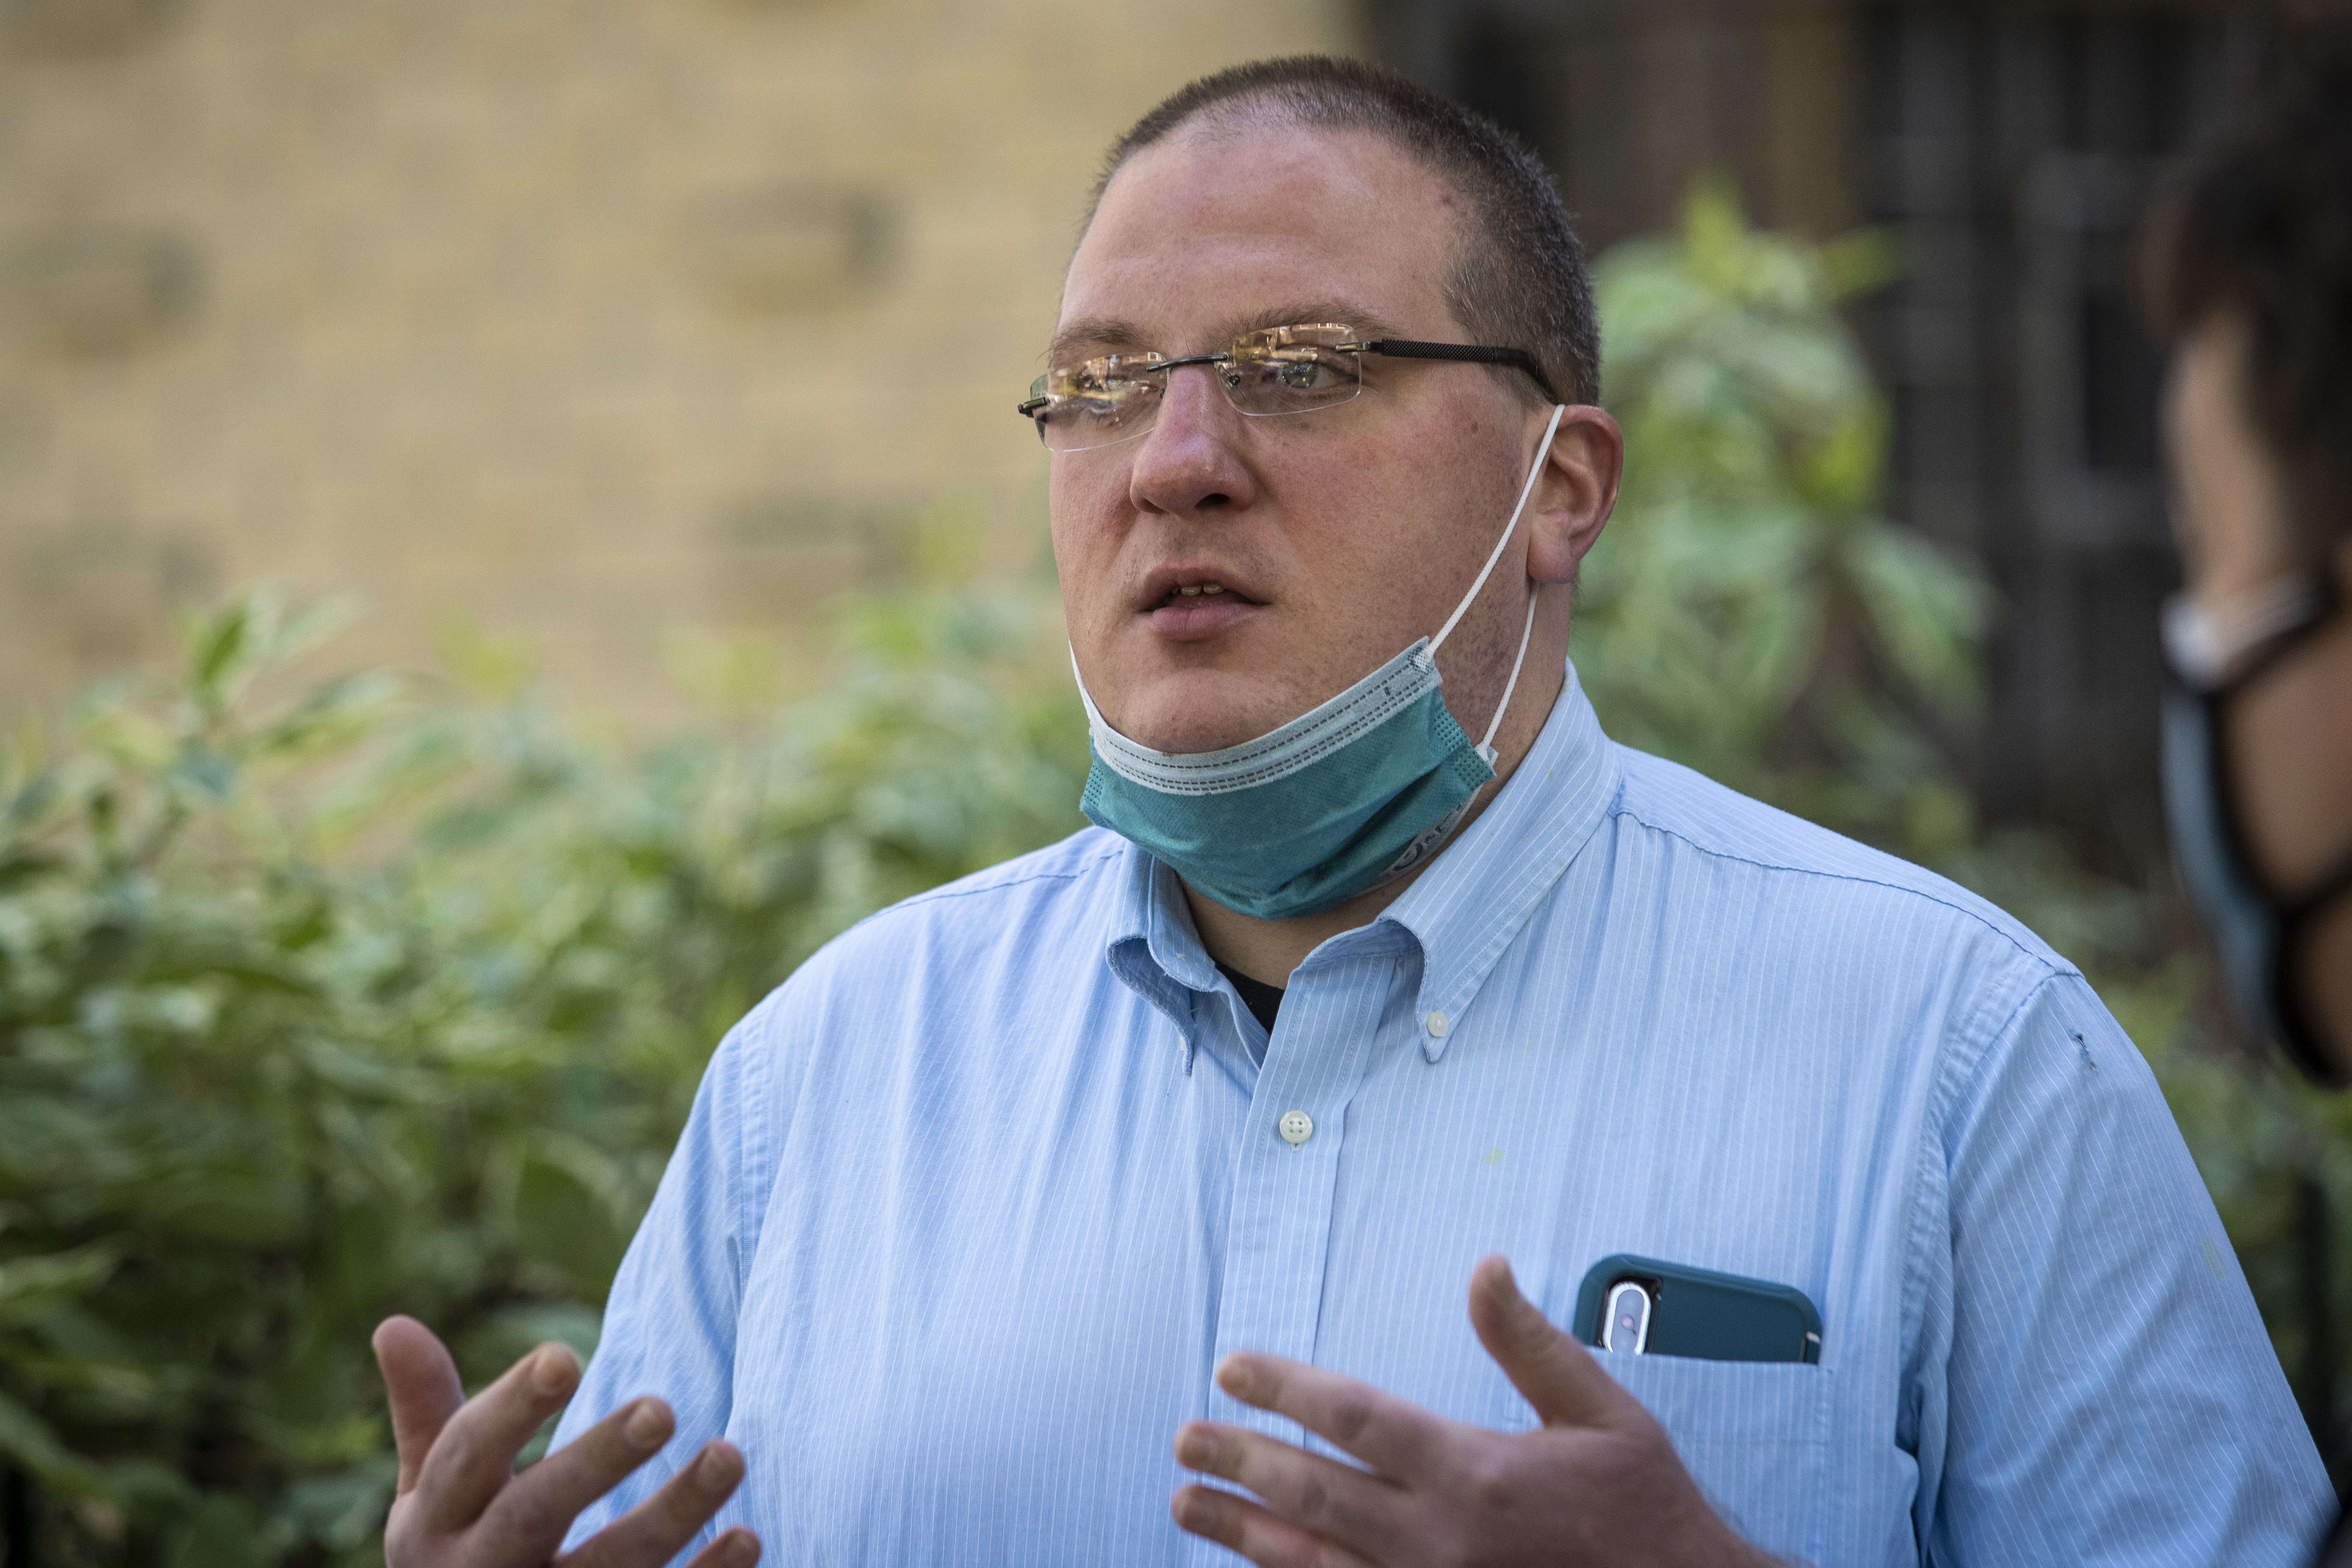 Brian Campbell, whose husband Douglass Watts was fatally shot in Rogers Park in 2018, speaks to reporters about the shooting in the North Side neighborhood, Friday afternoon, Oct. 2, 2020.